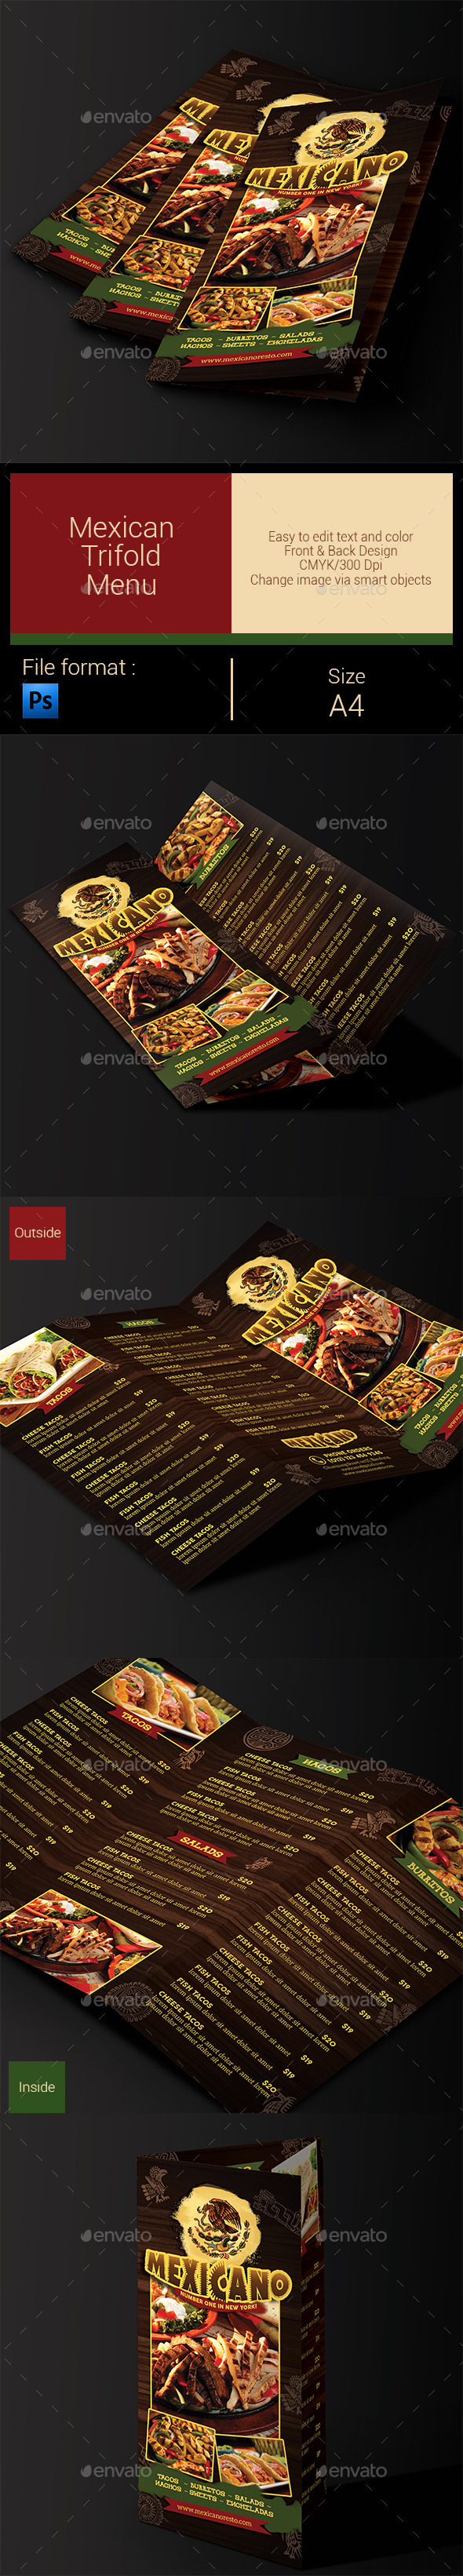 Mexican Menu Trifold - Food Menus Print Templates